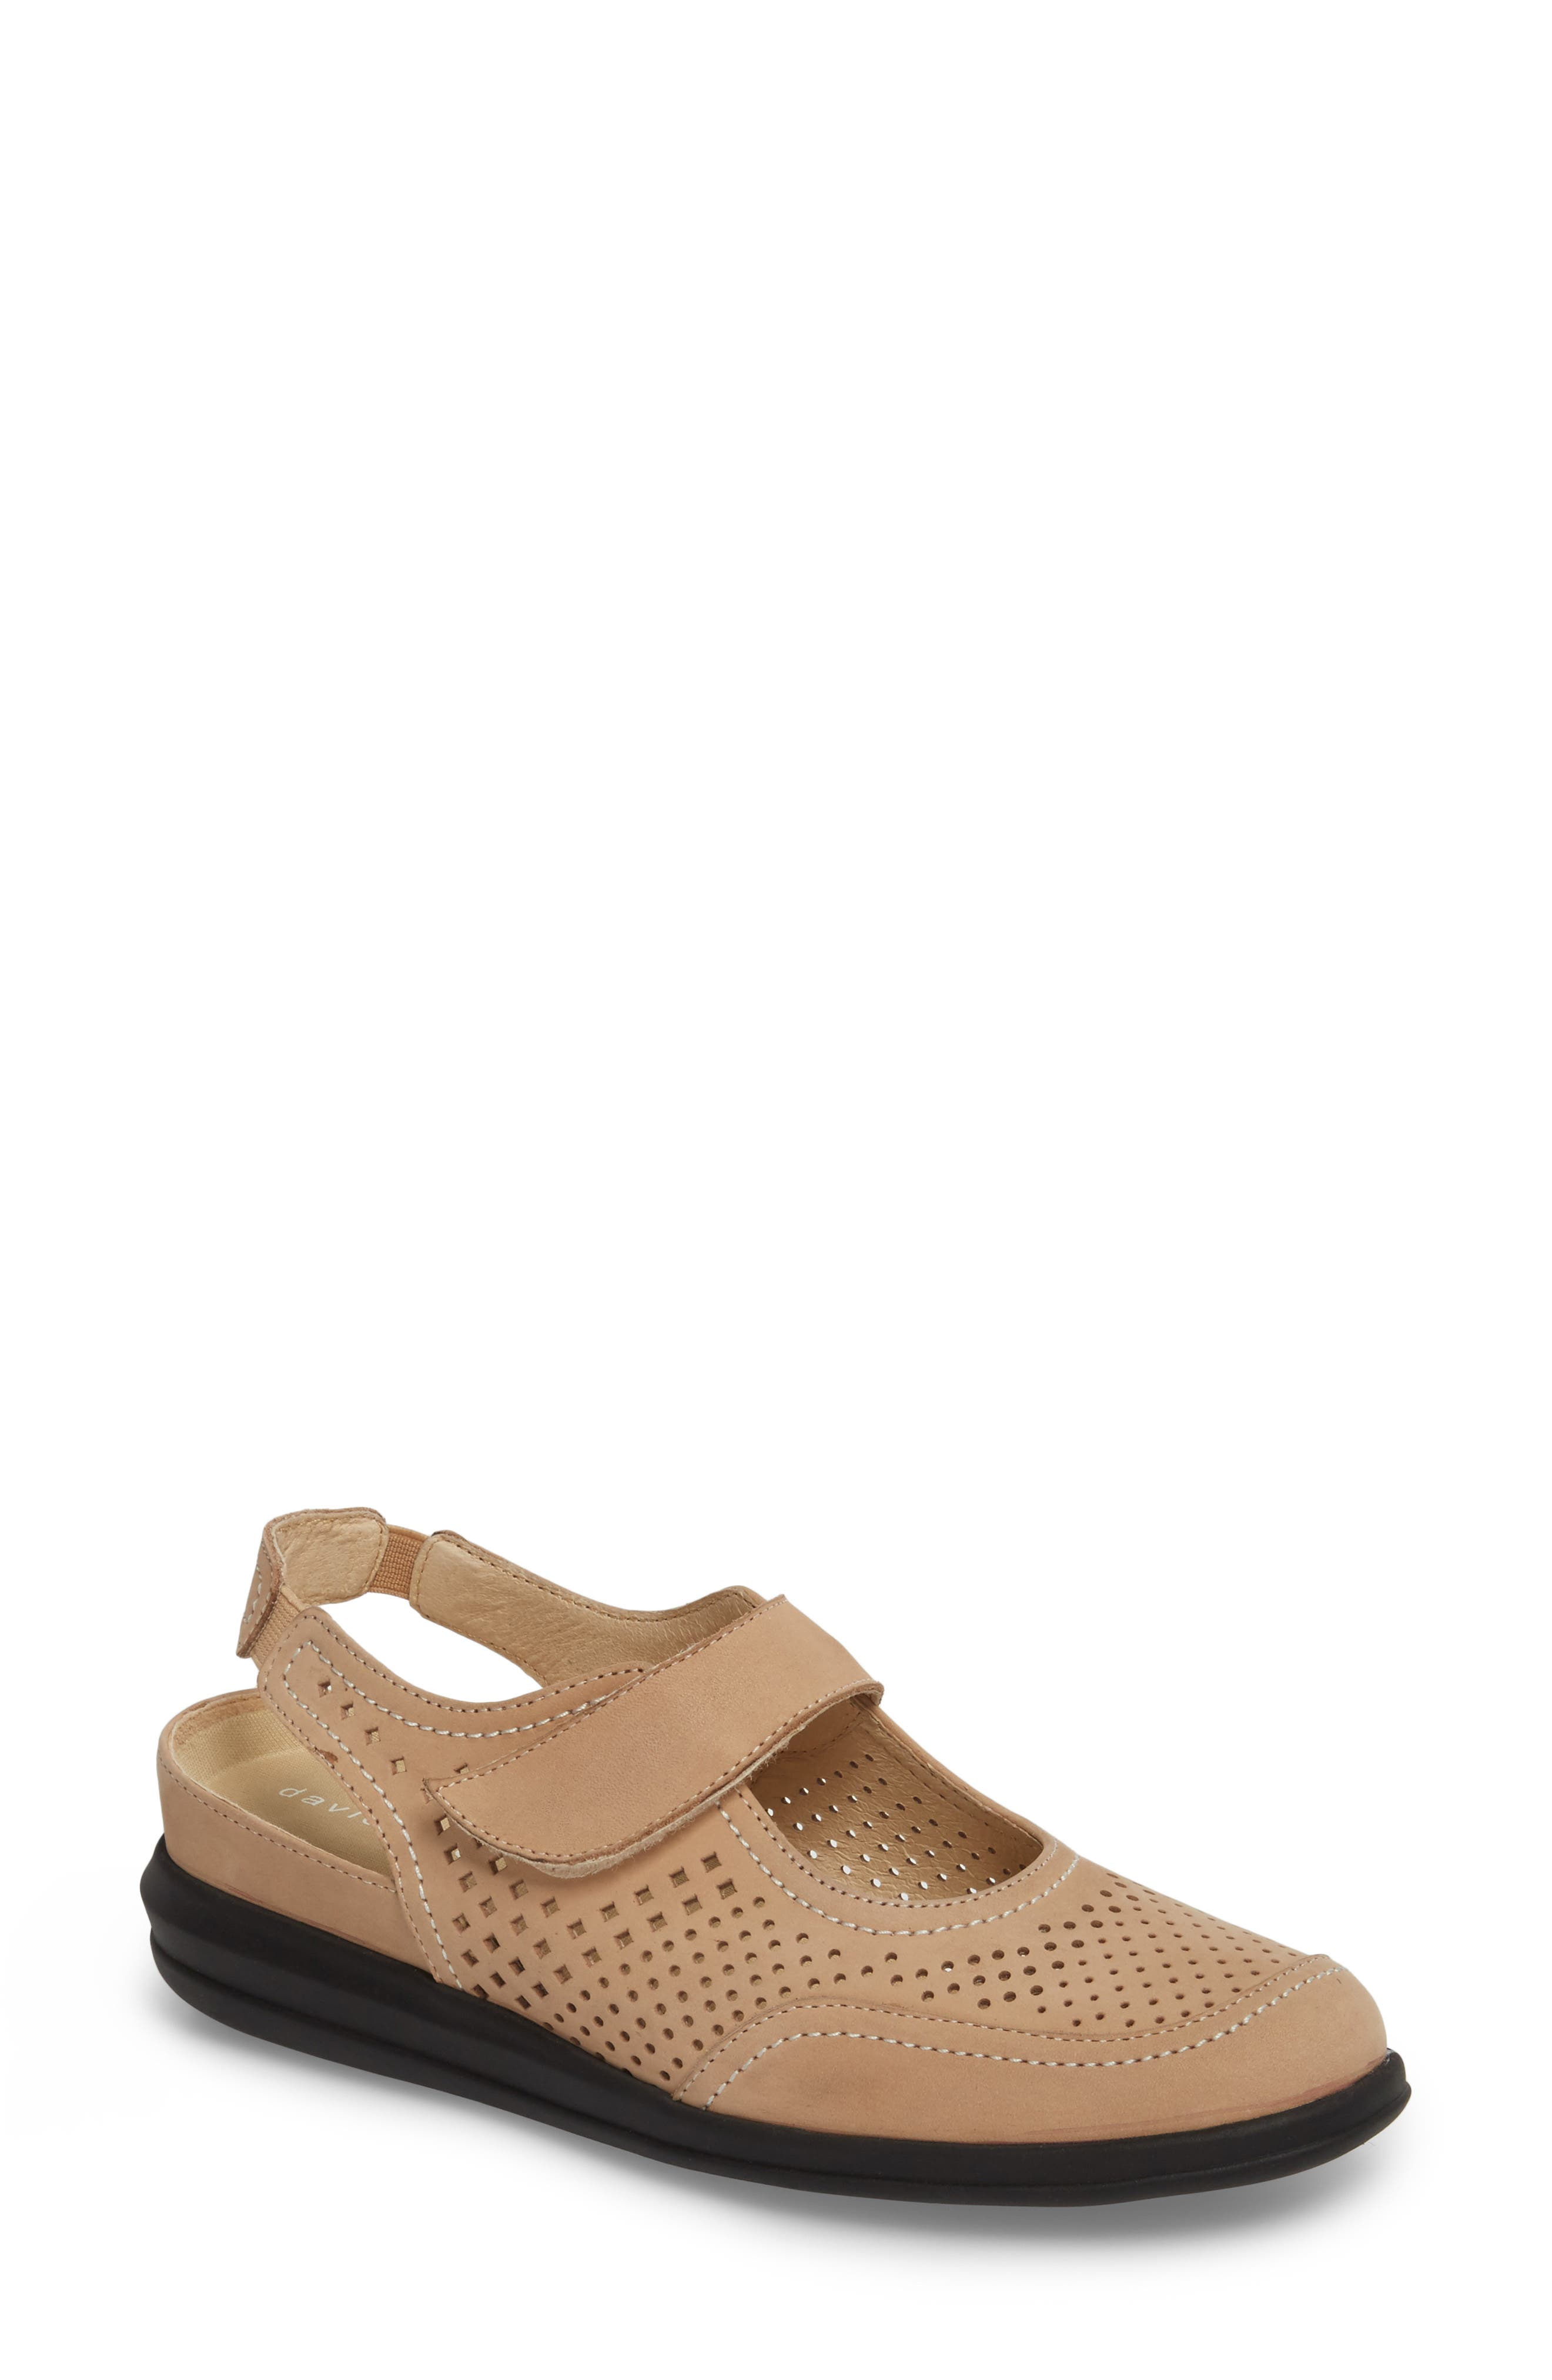 Clever Slingback Sneaker,                         Main,                         color, Sand Nubuck